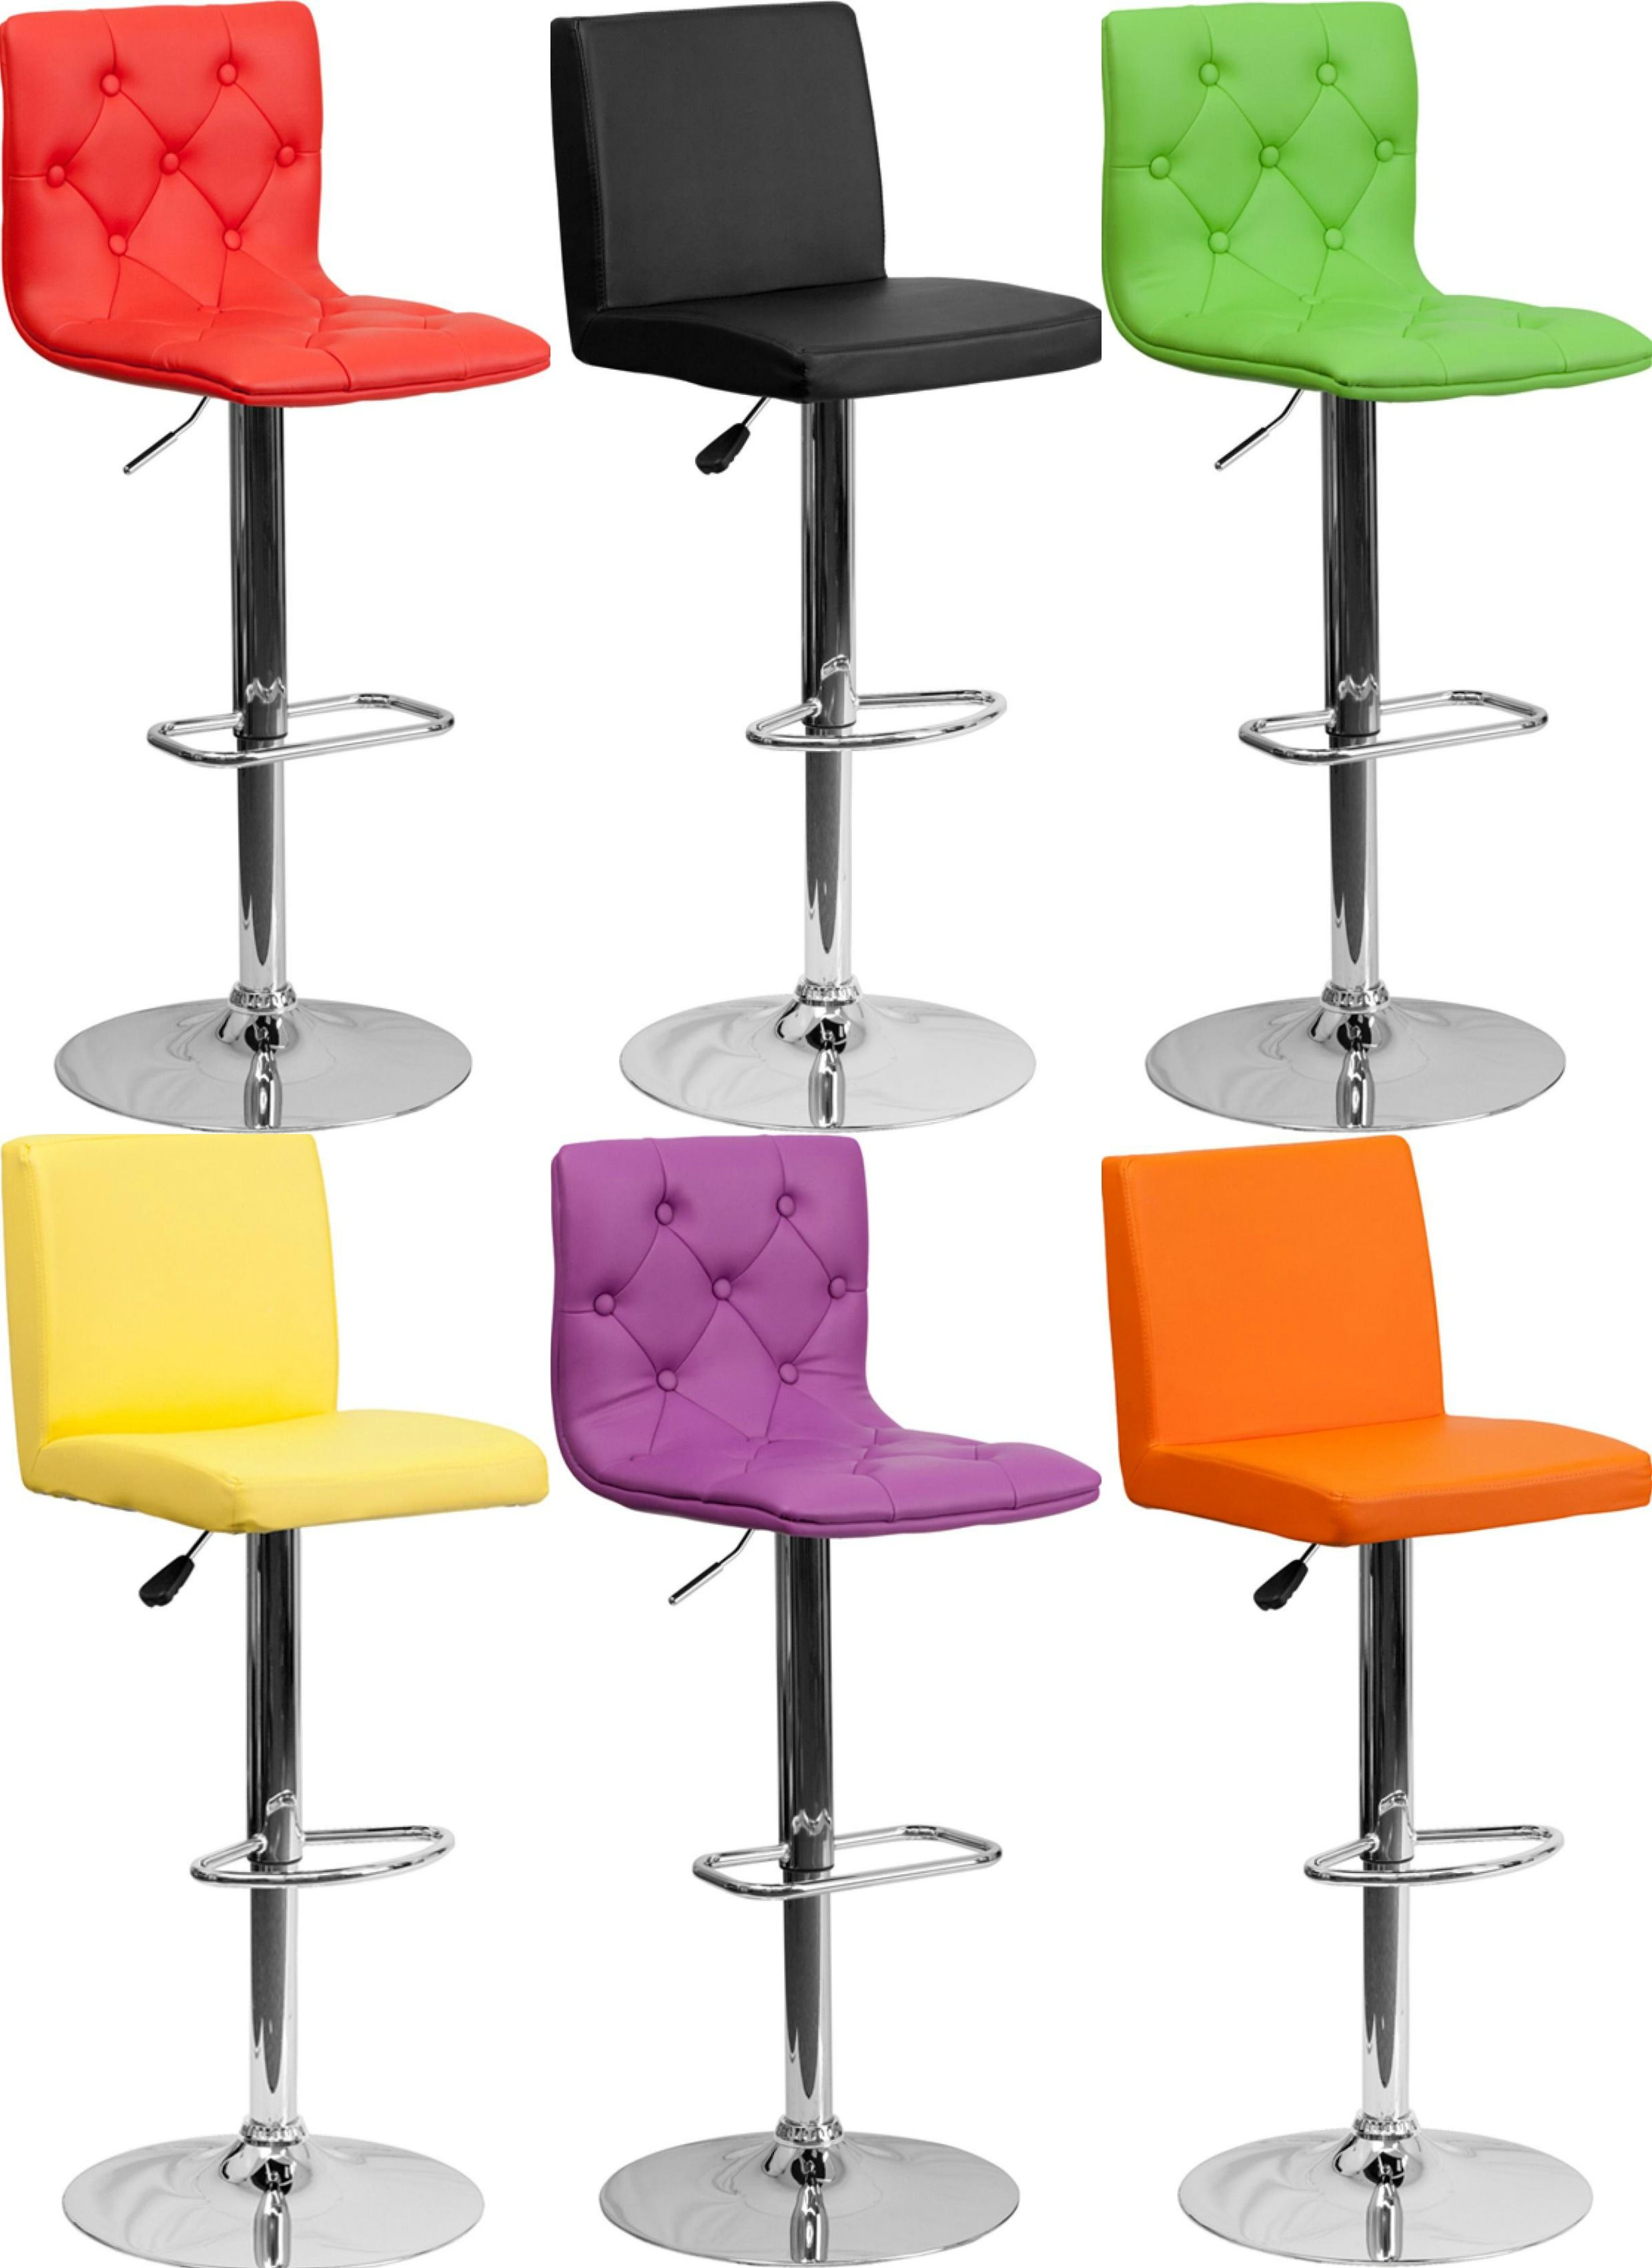 These flash furniture vinyl adjustable height bar stools are a cool contemporary addition to any bar